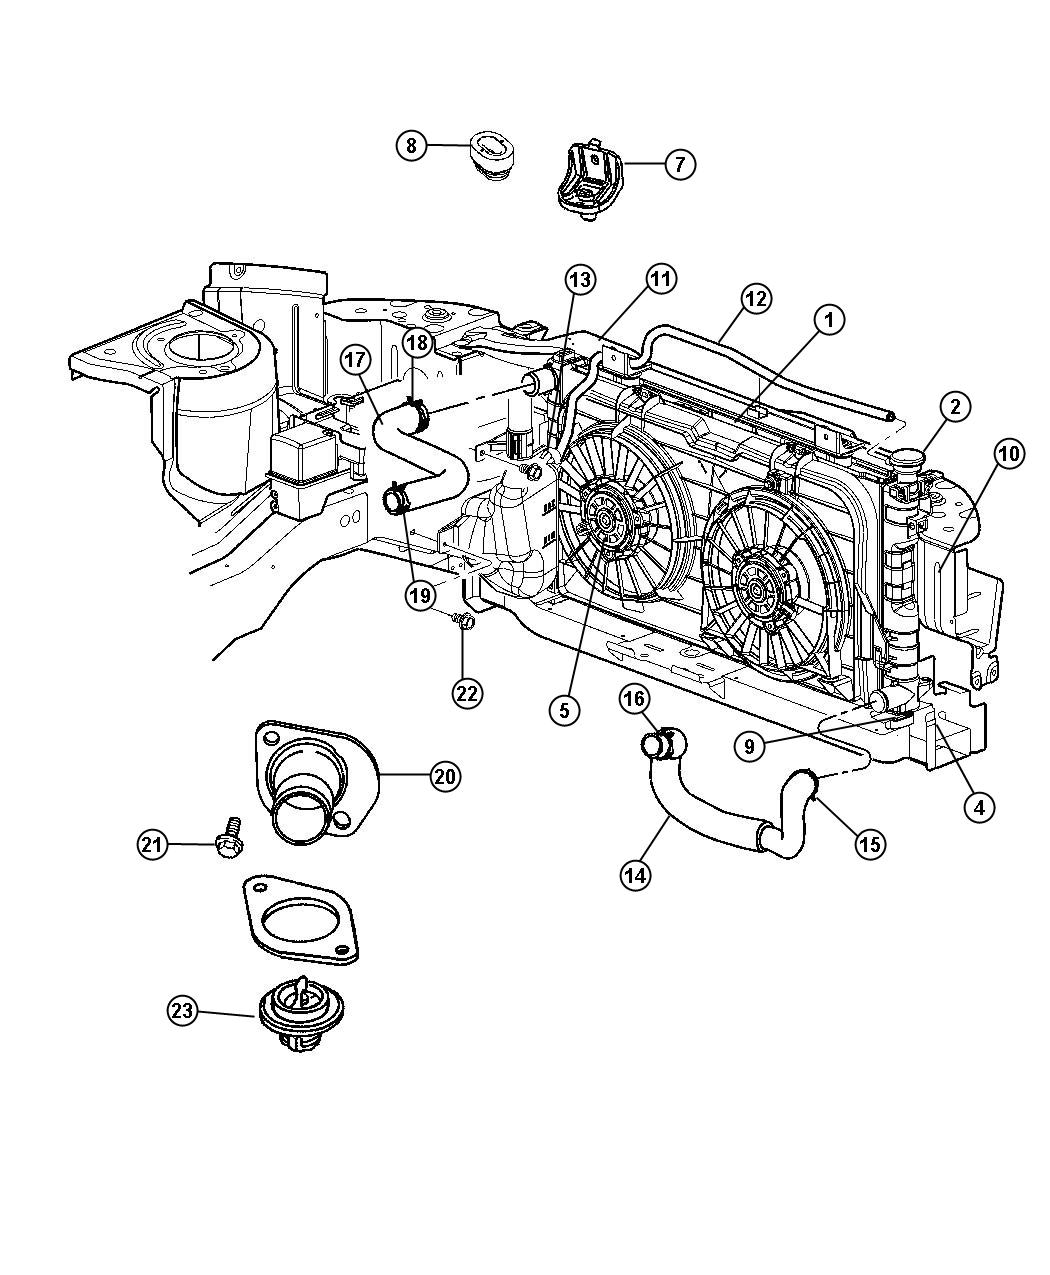 Chrysler Town And Country Air Conditioning Diagram